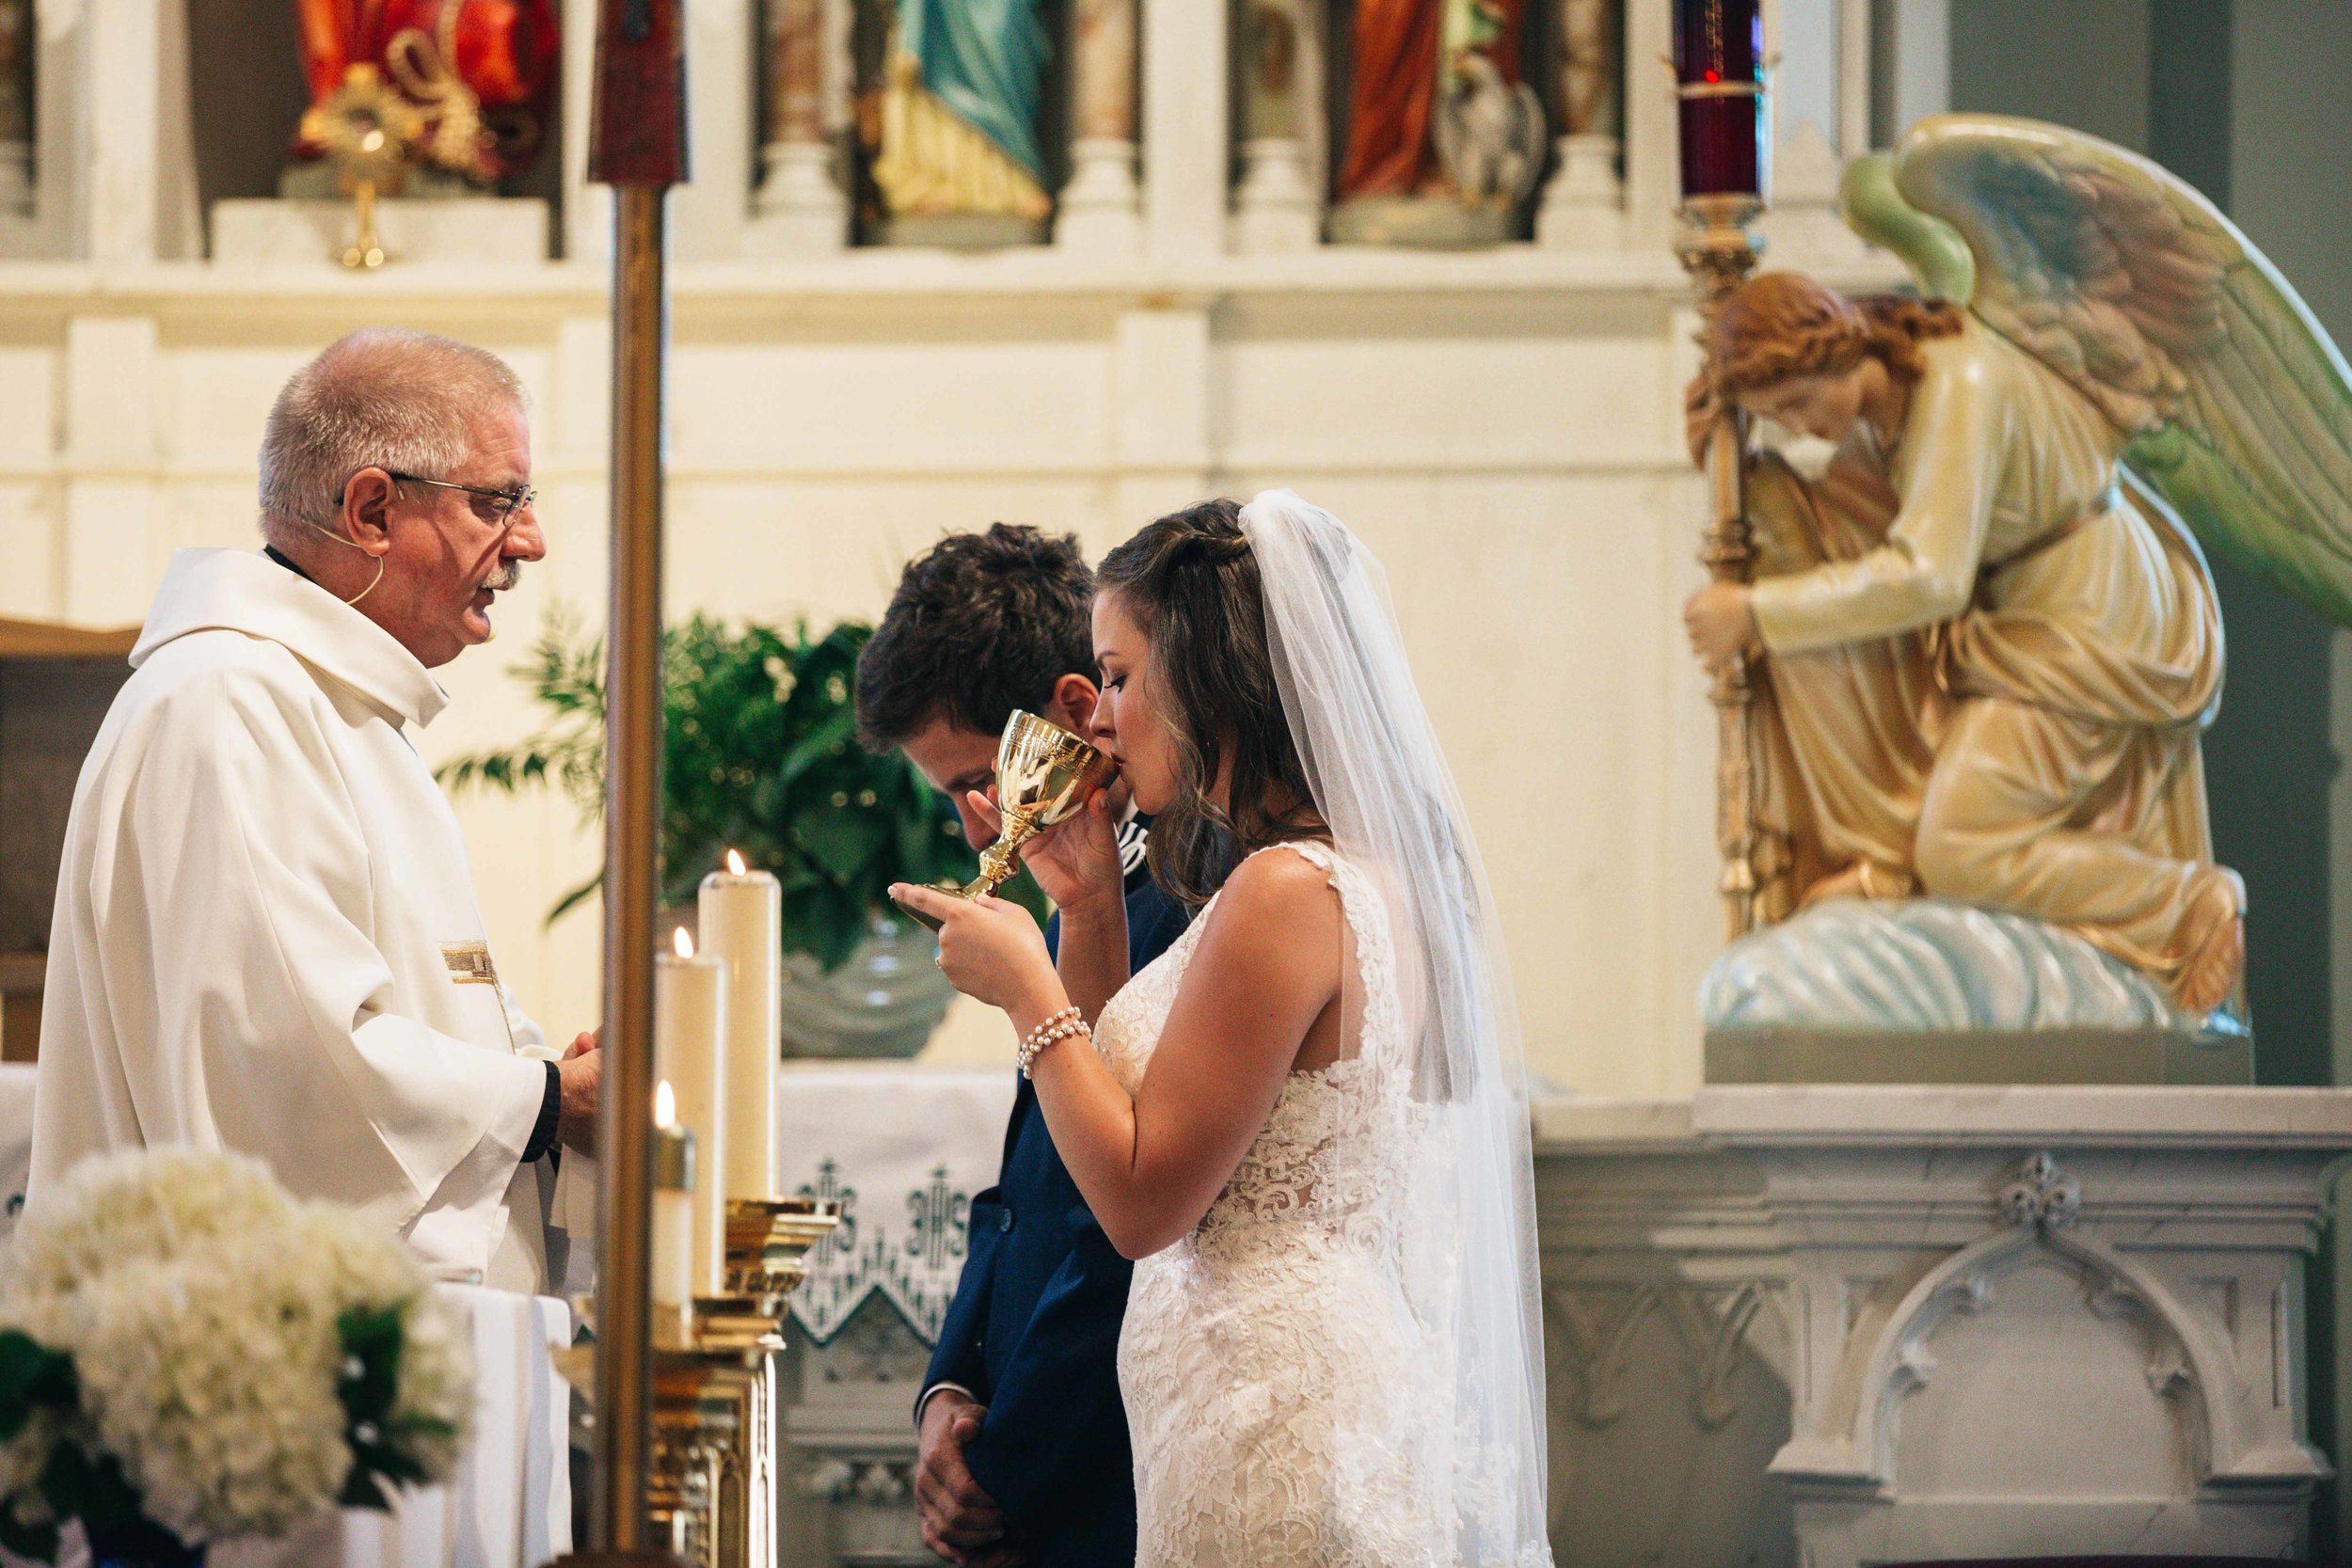 Bride and Groom from Toledo Ohio take Communion at Wedding for Unity with Photographers from Ohio